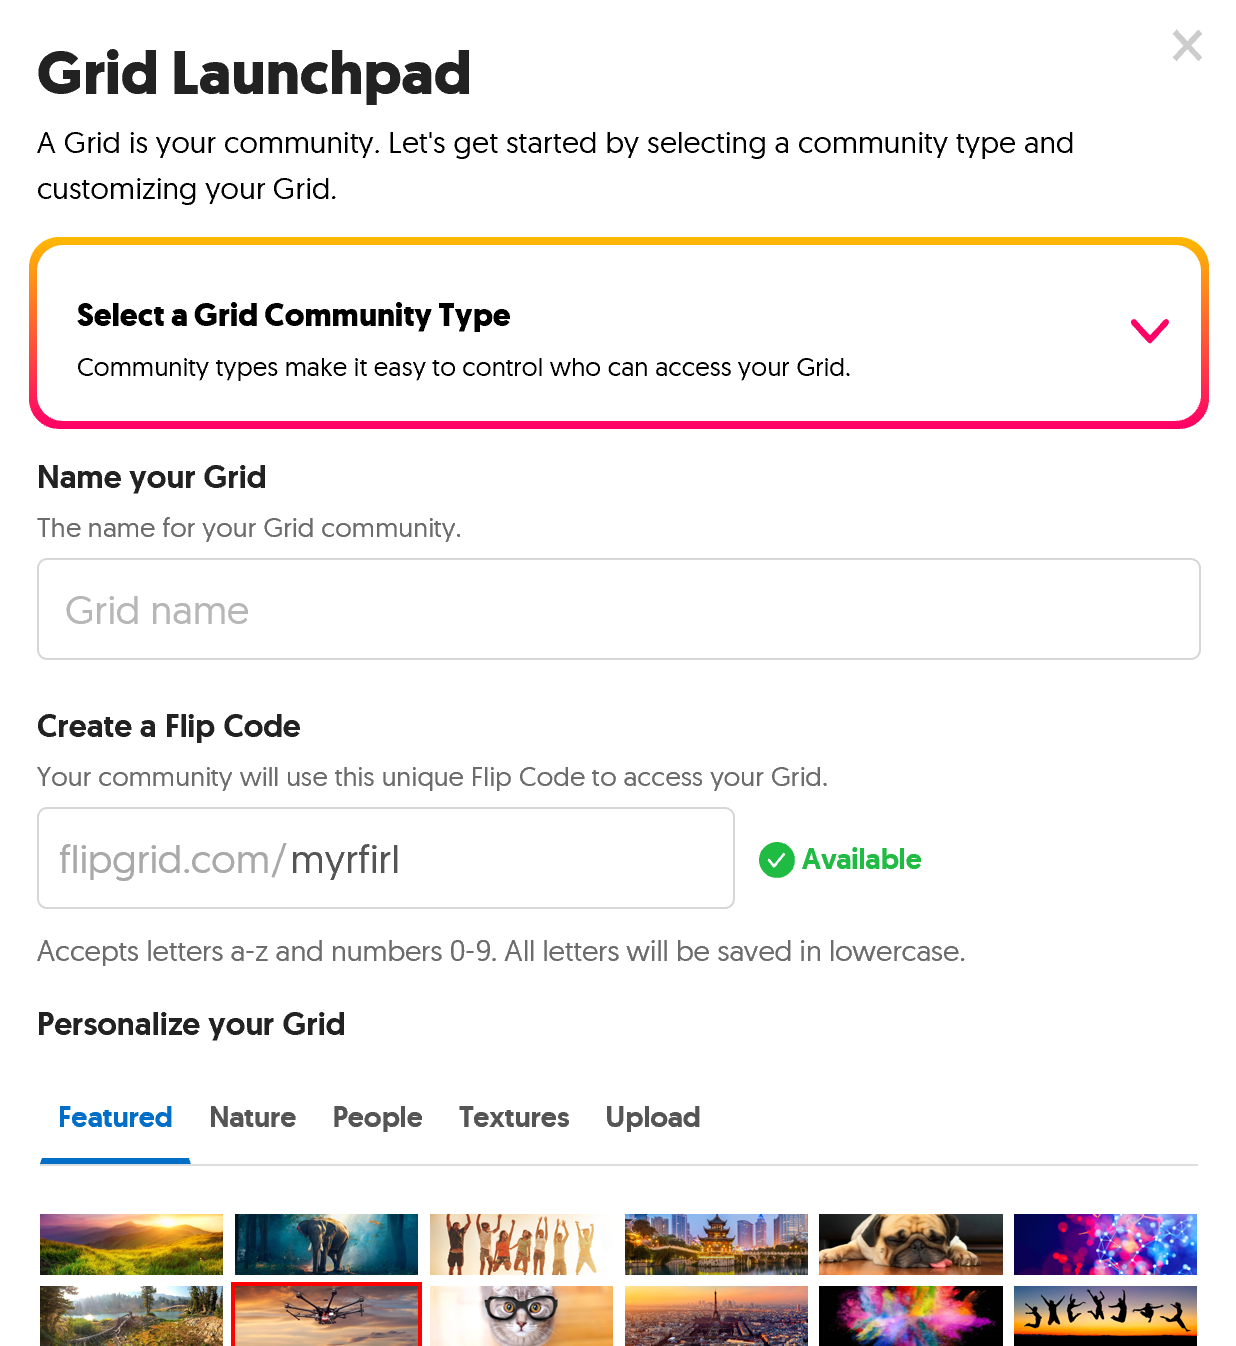 A screen-capture of the Flipgrid Grid Launcher